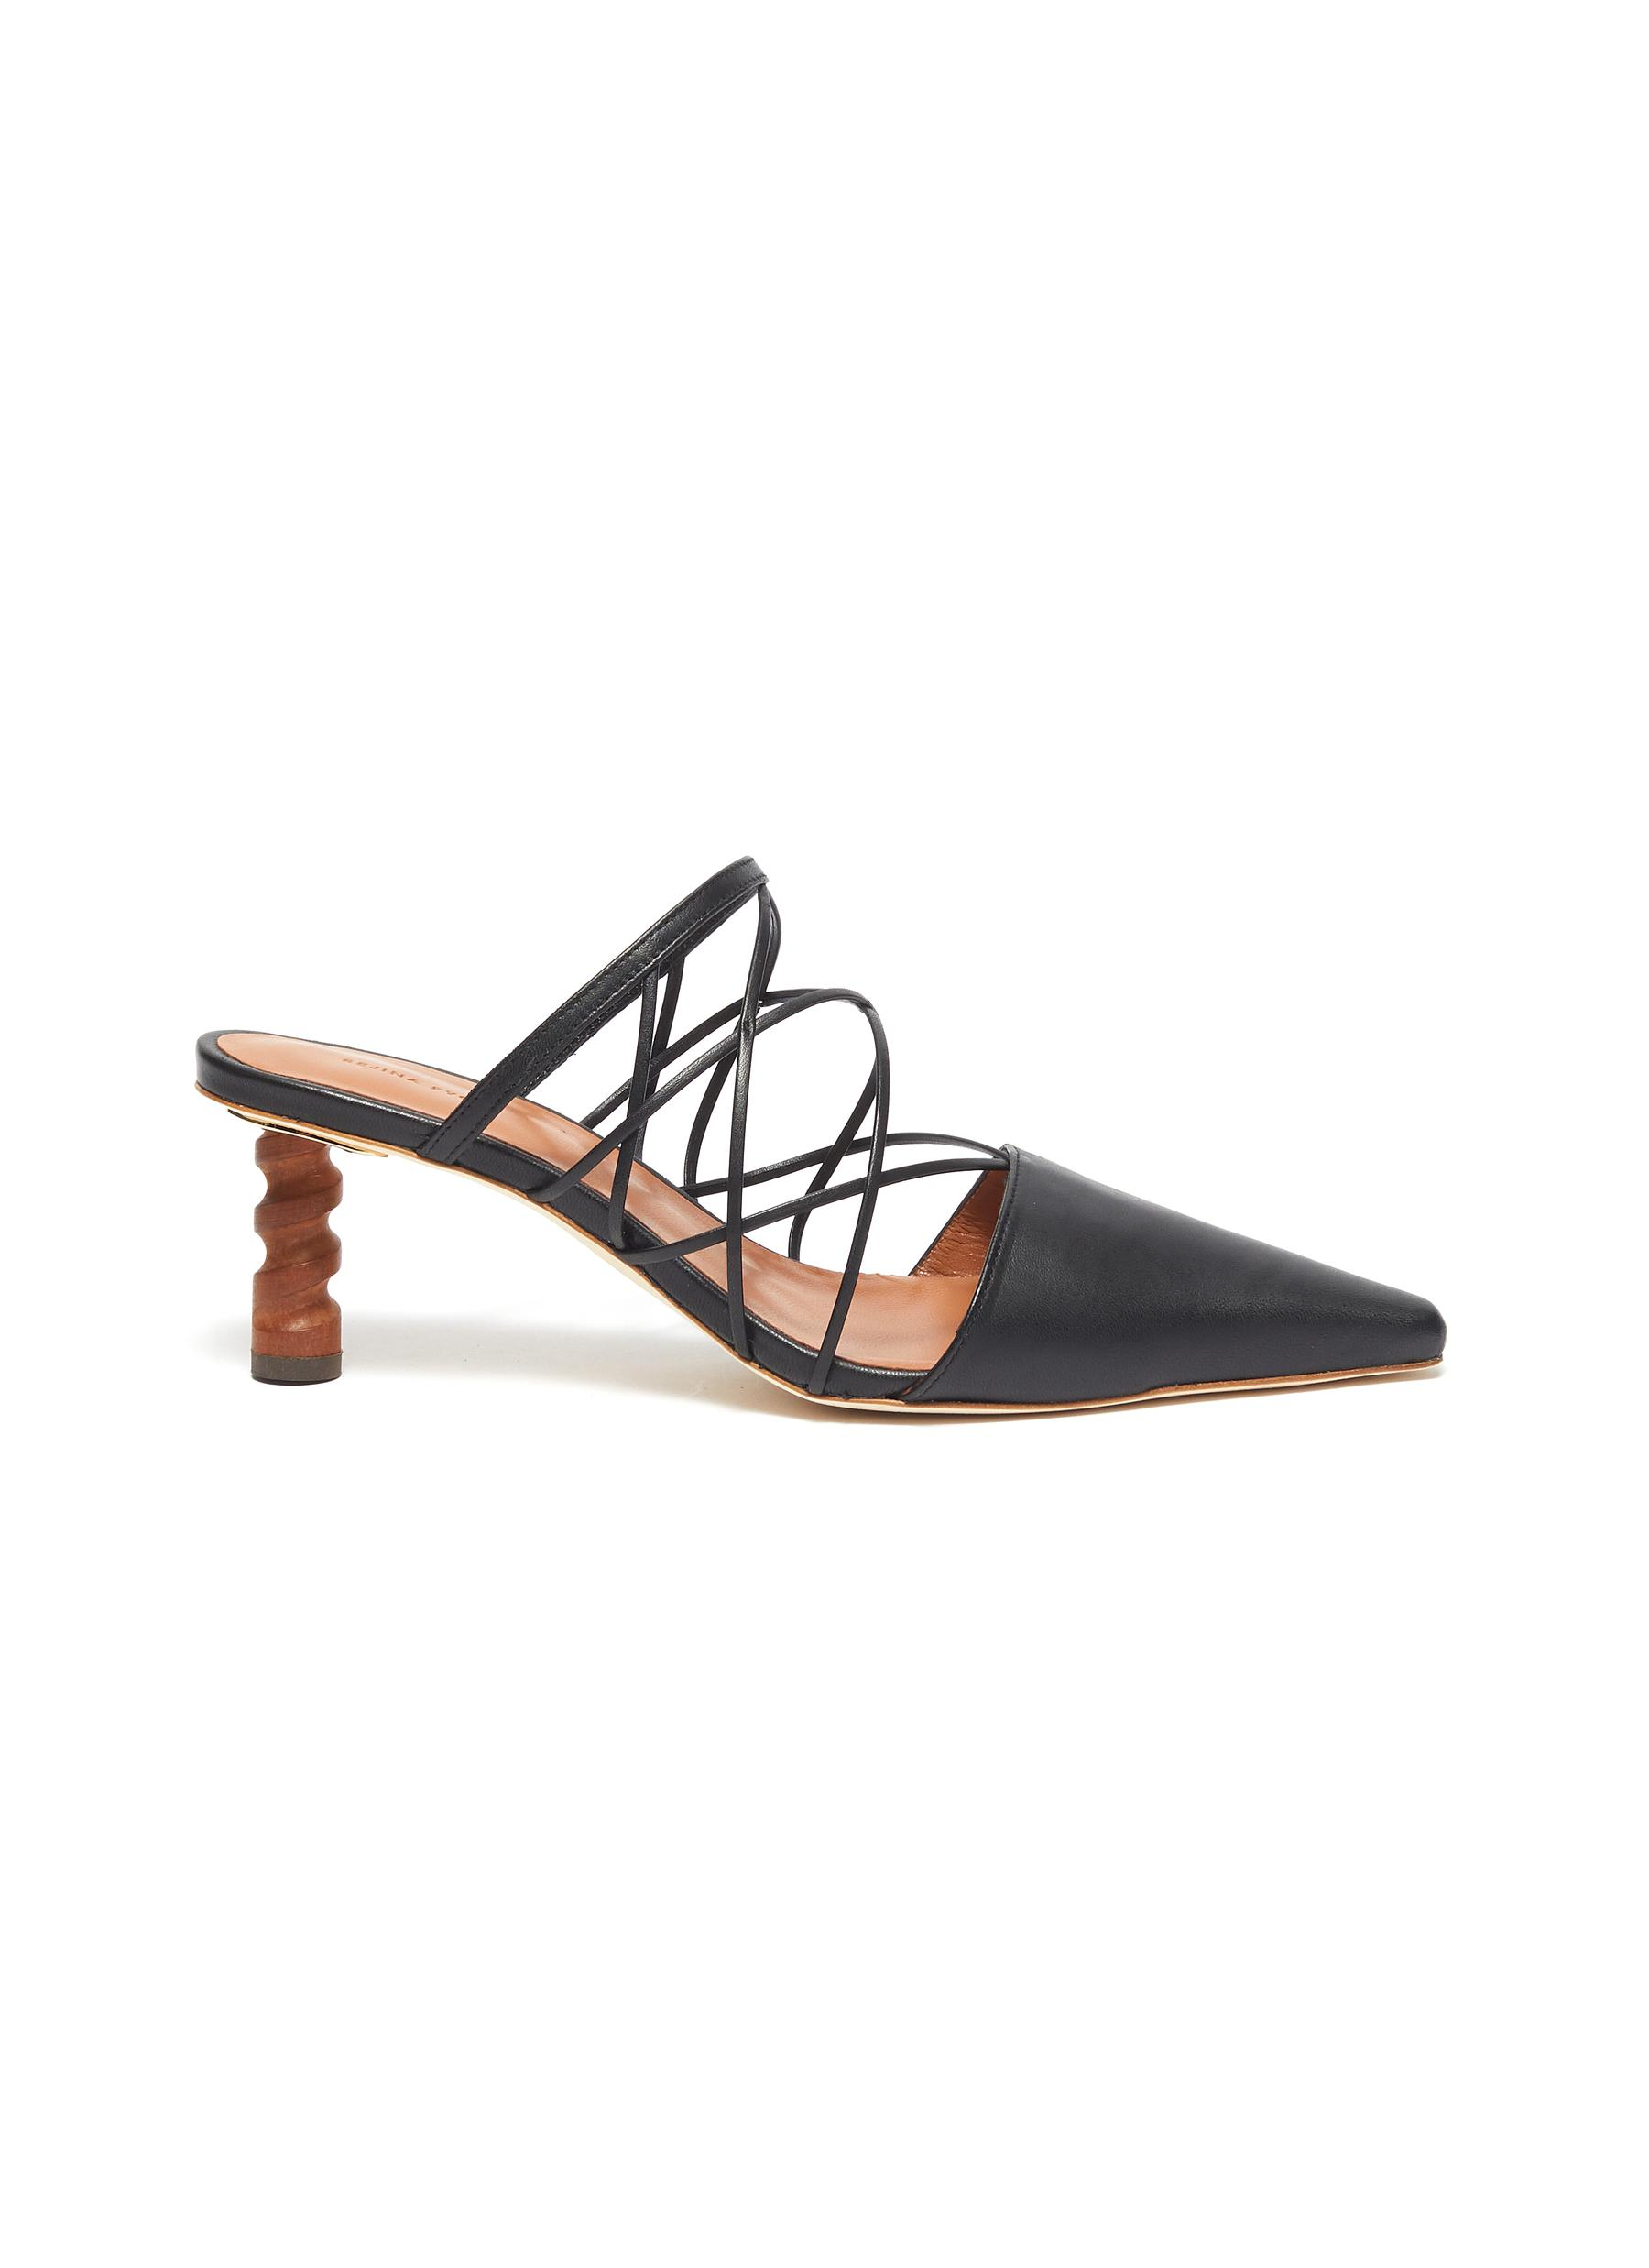 Lisa wooden heel strappy leather mules by Rejina Pyo